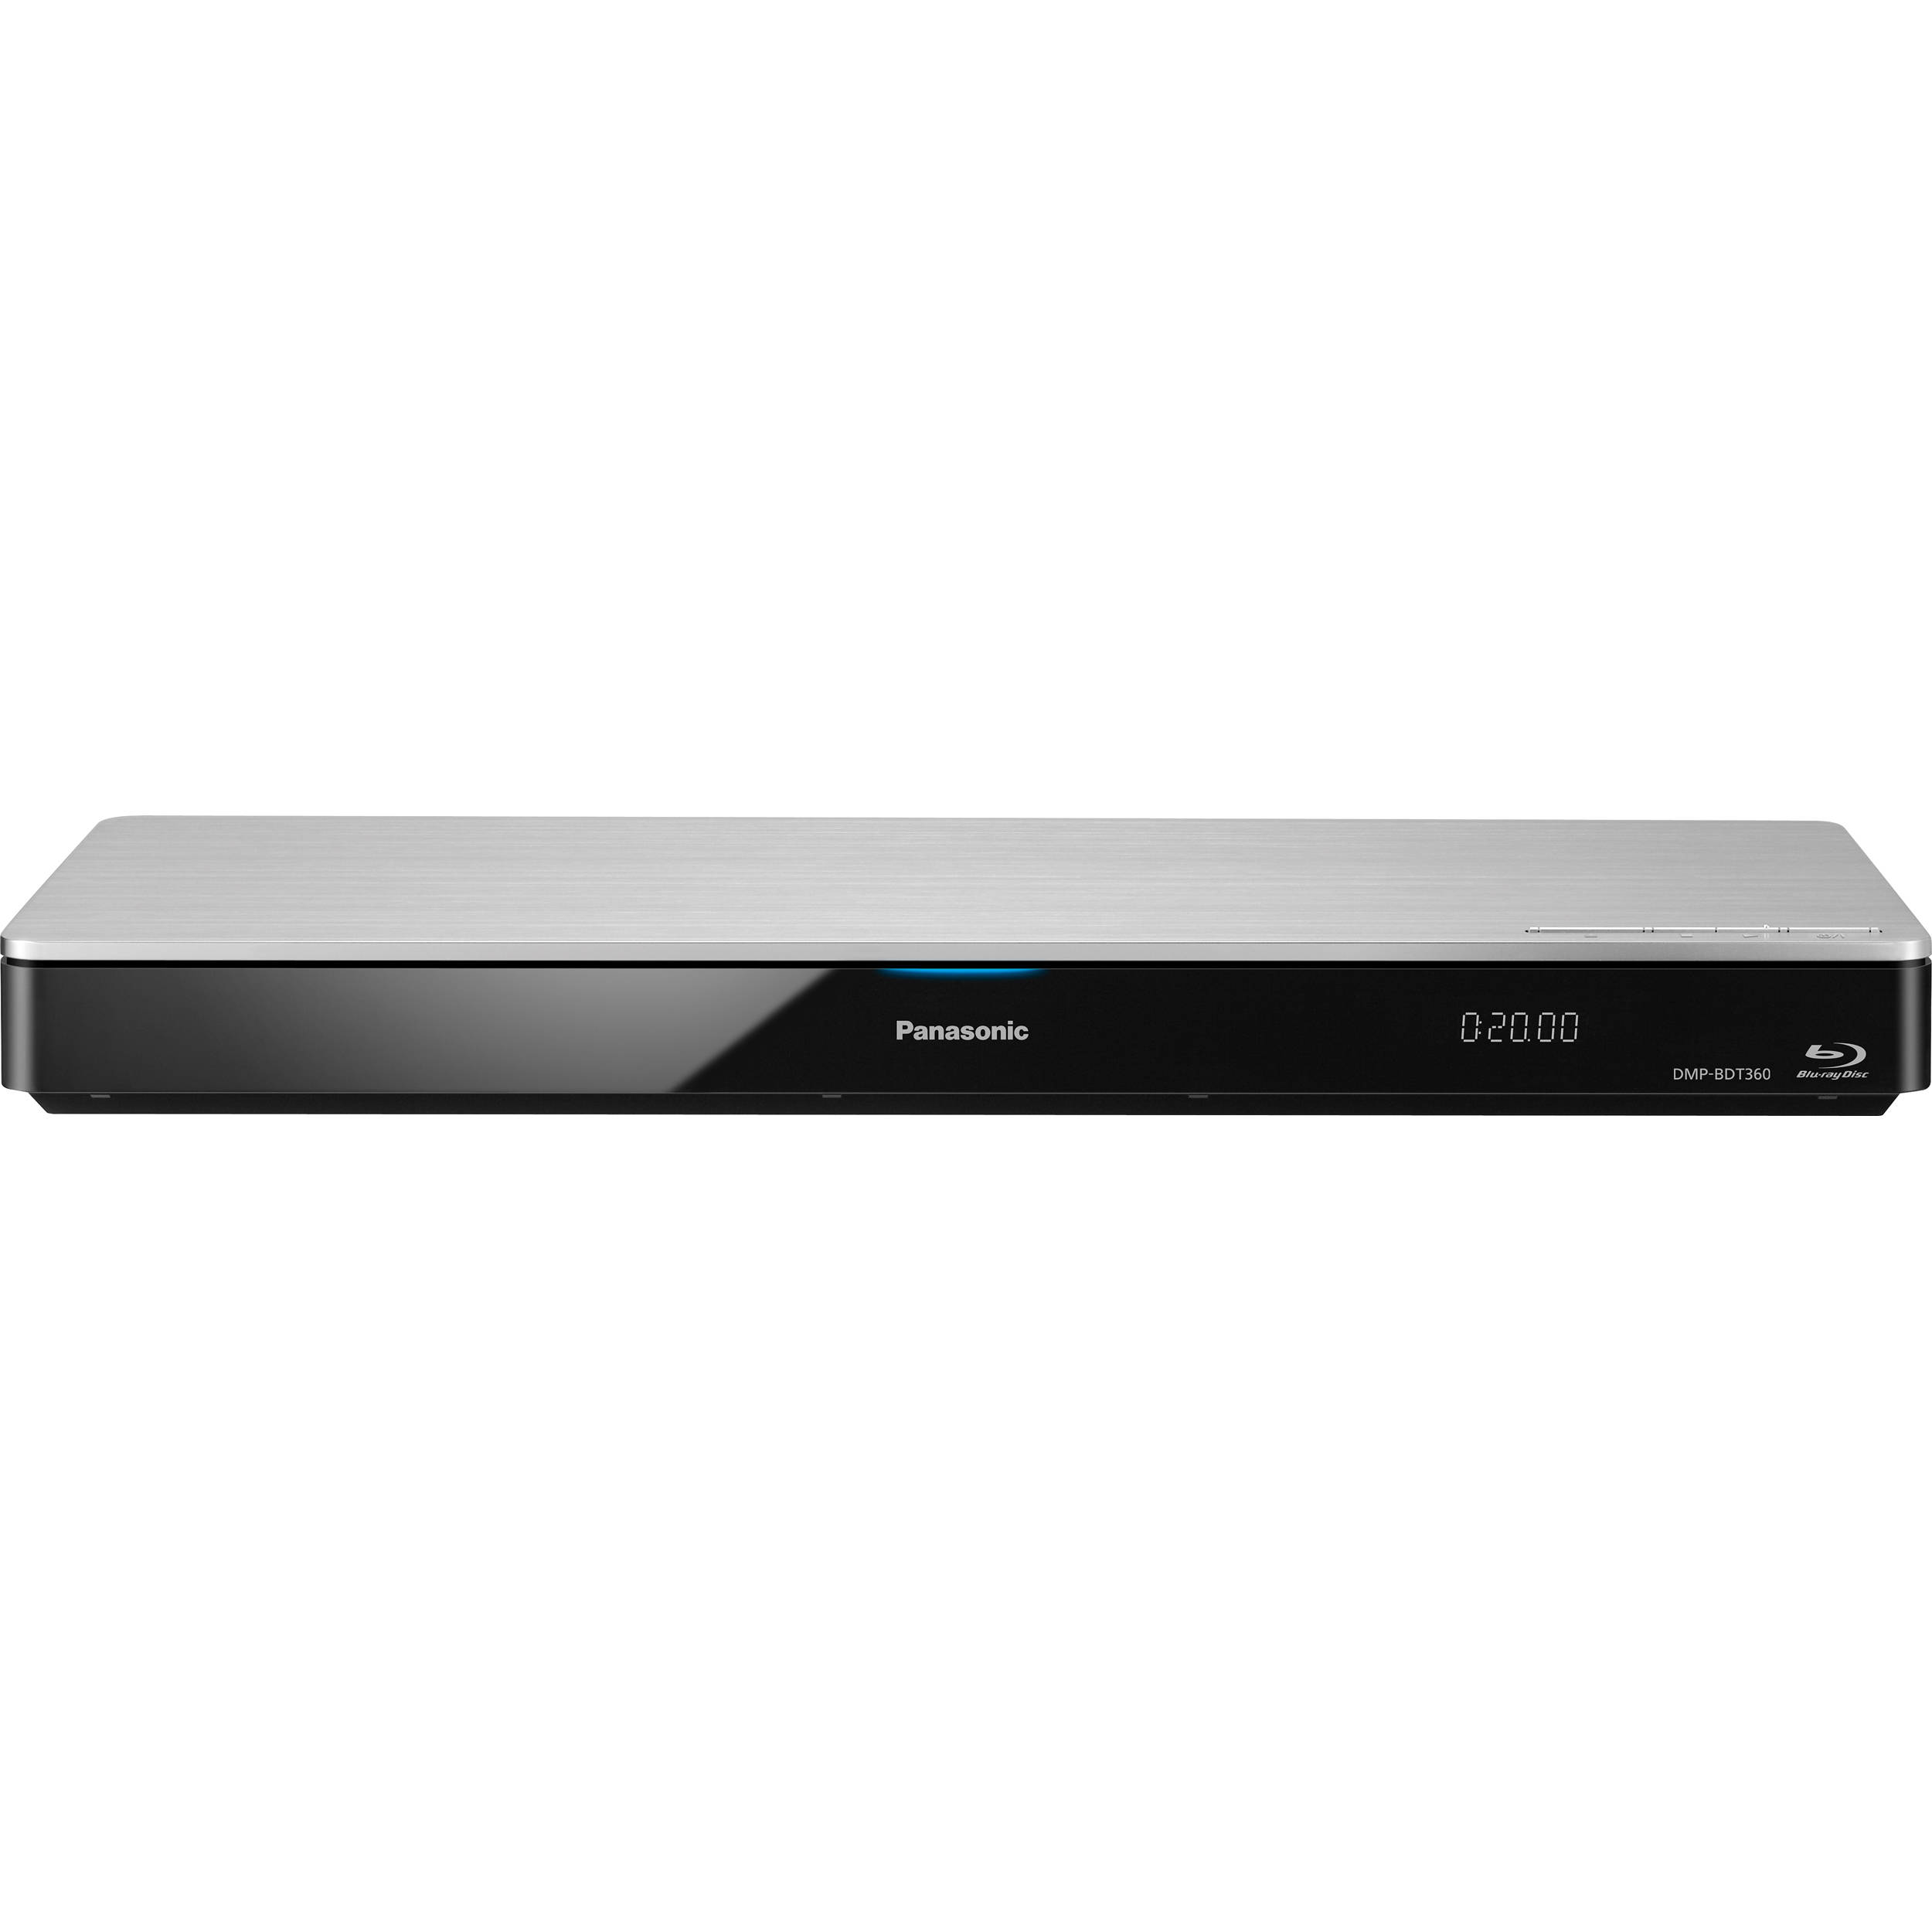 Panasonic DMP-BDT330PU Blu-ray Player 64 Bit